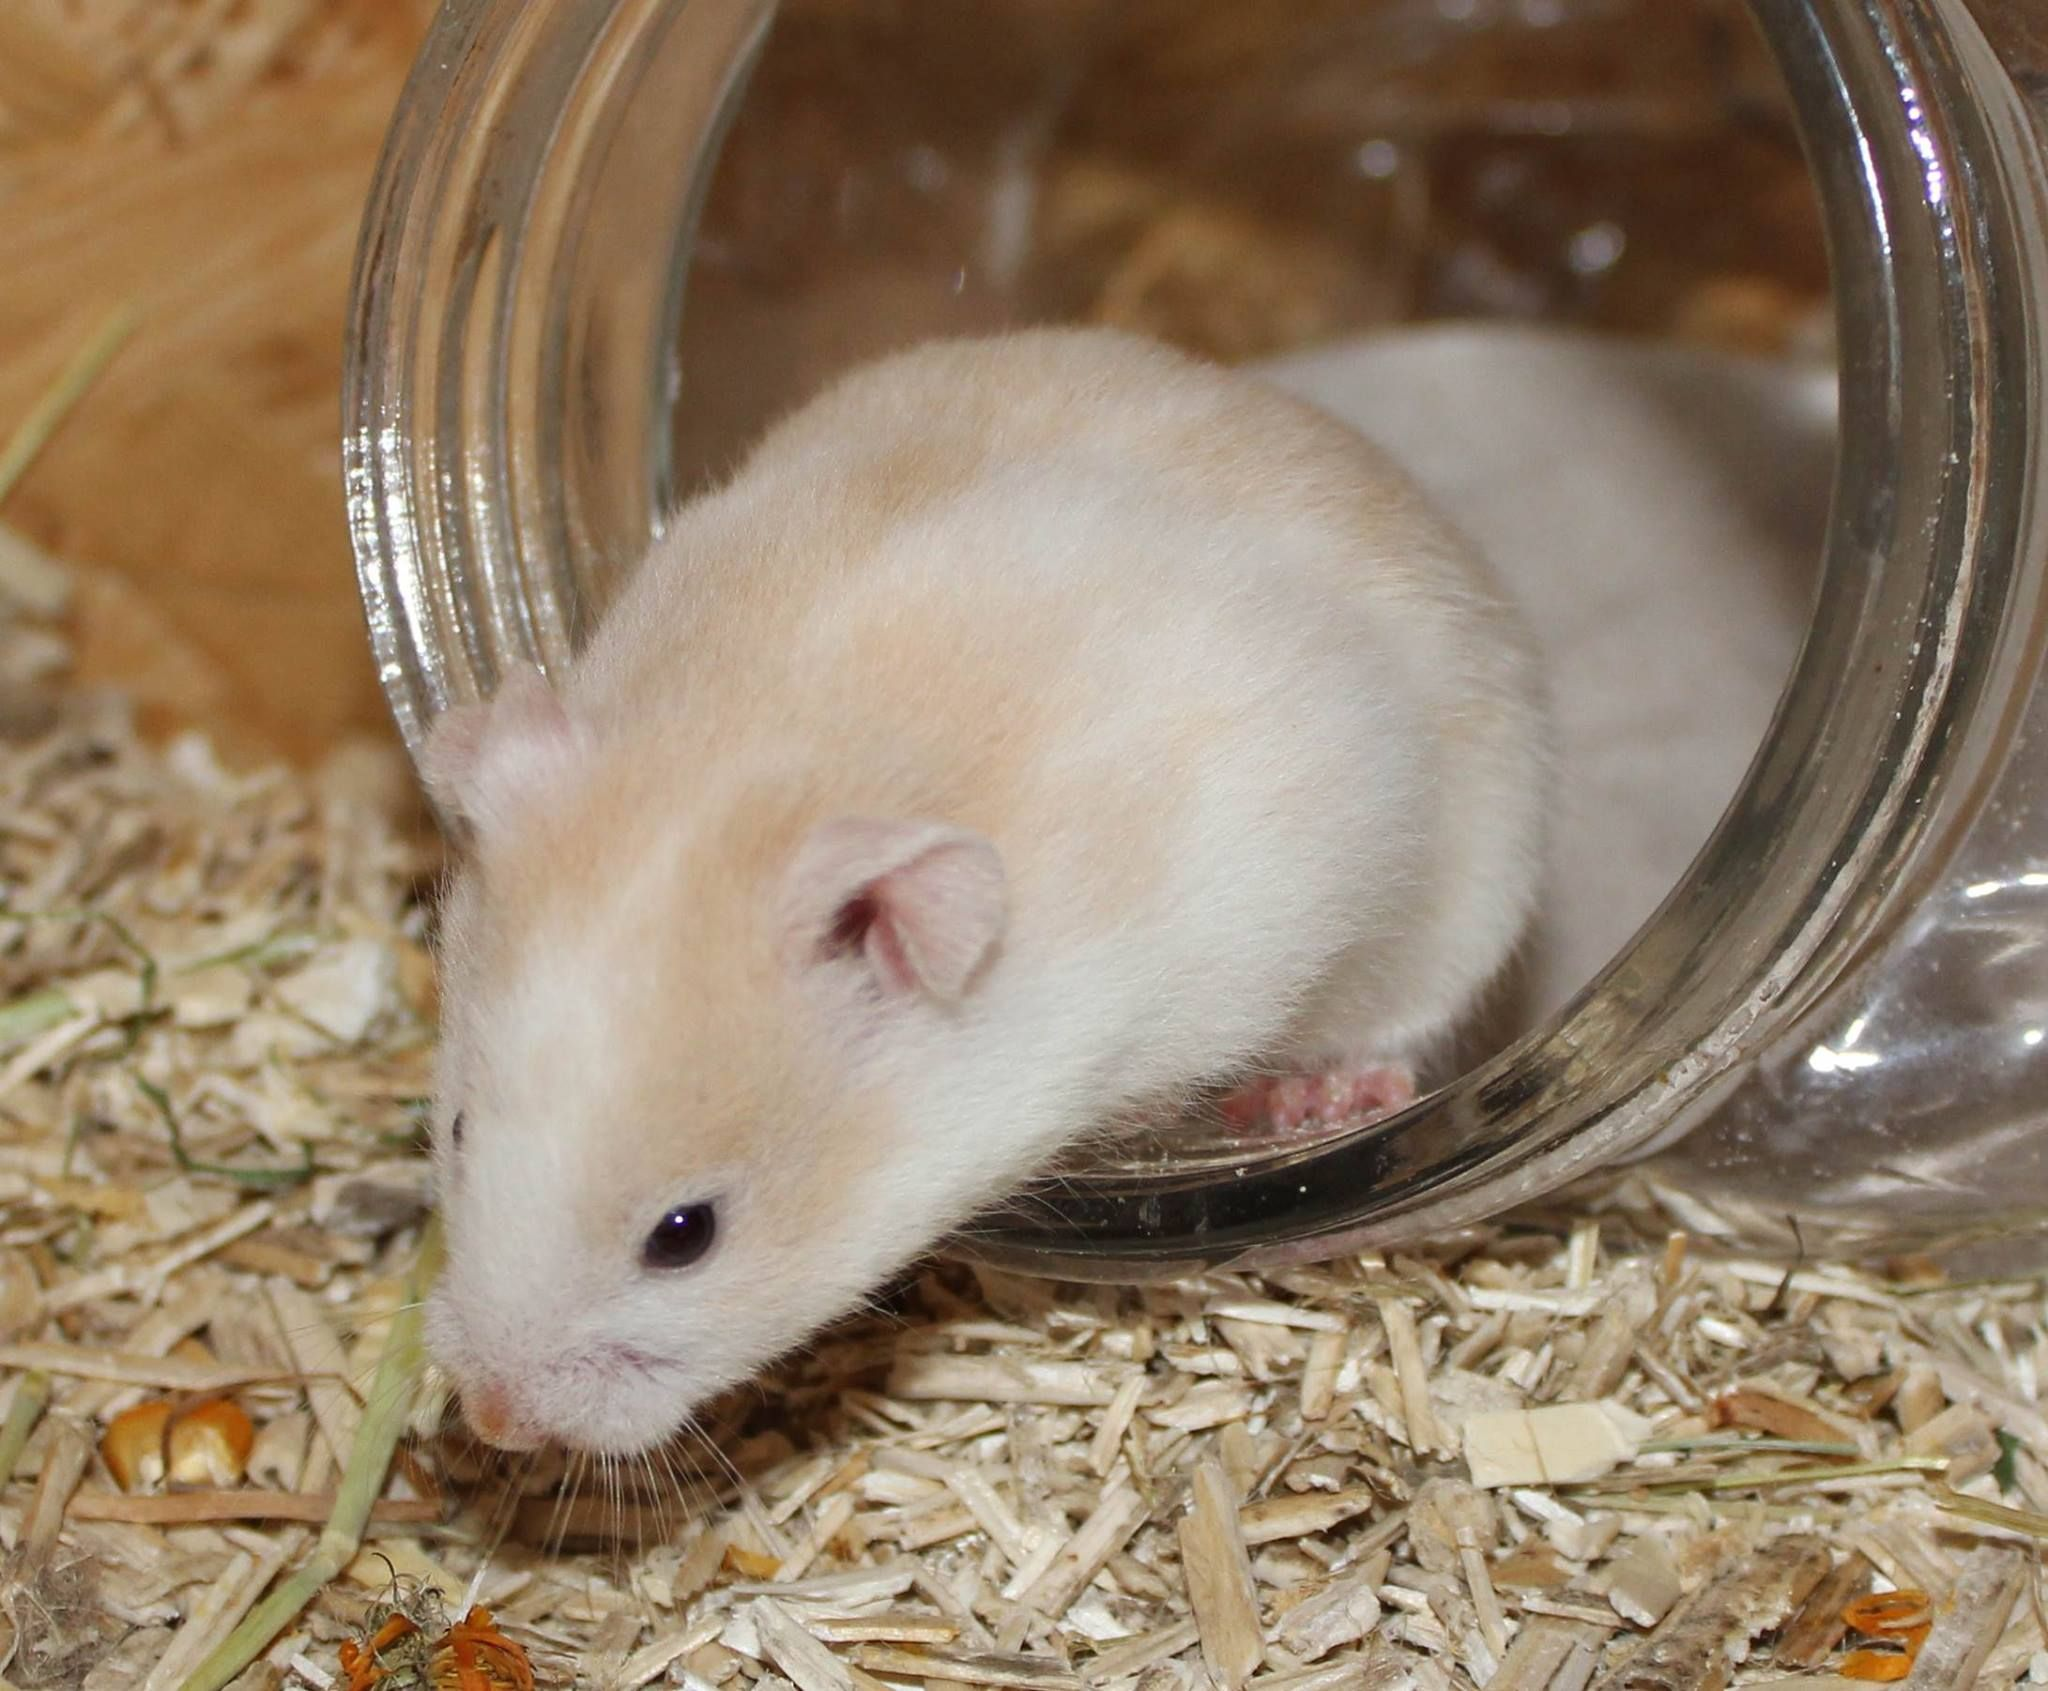 Photos From Hamsterzucht Von Sweetness S Post Hamsterzucht Von Sweetness With Images Pet Rats Syrian Hamster Dwarf Hamster